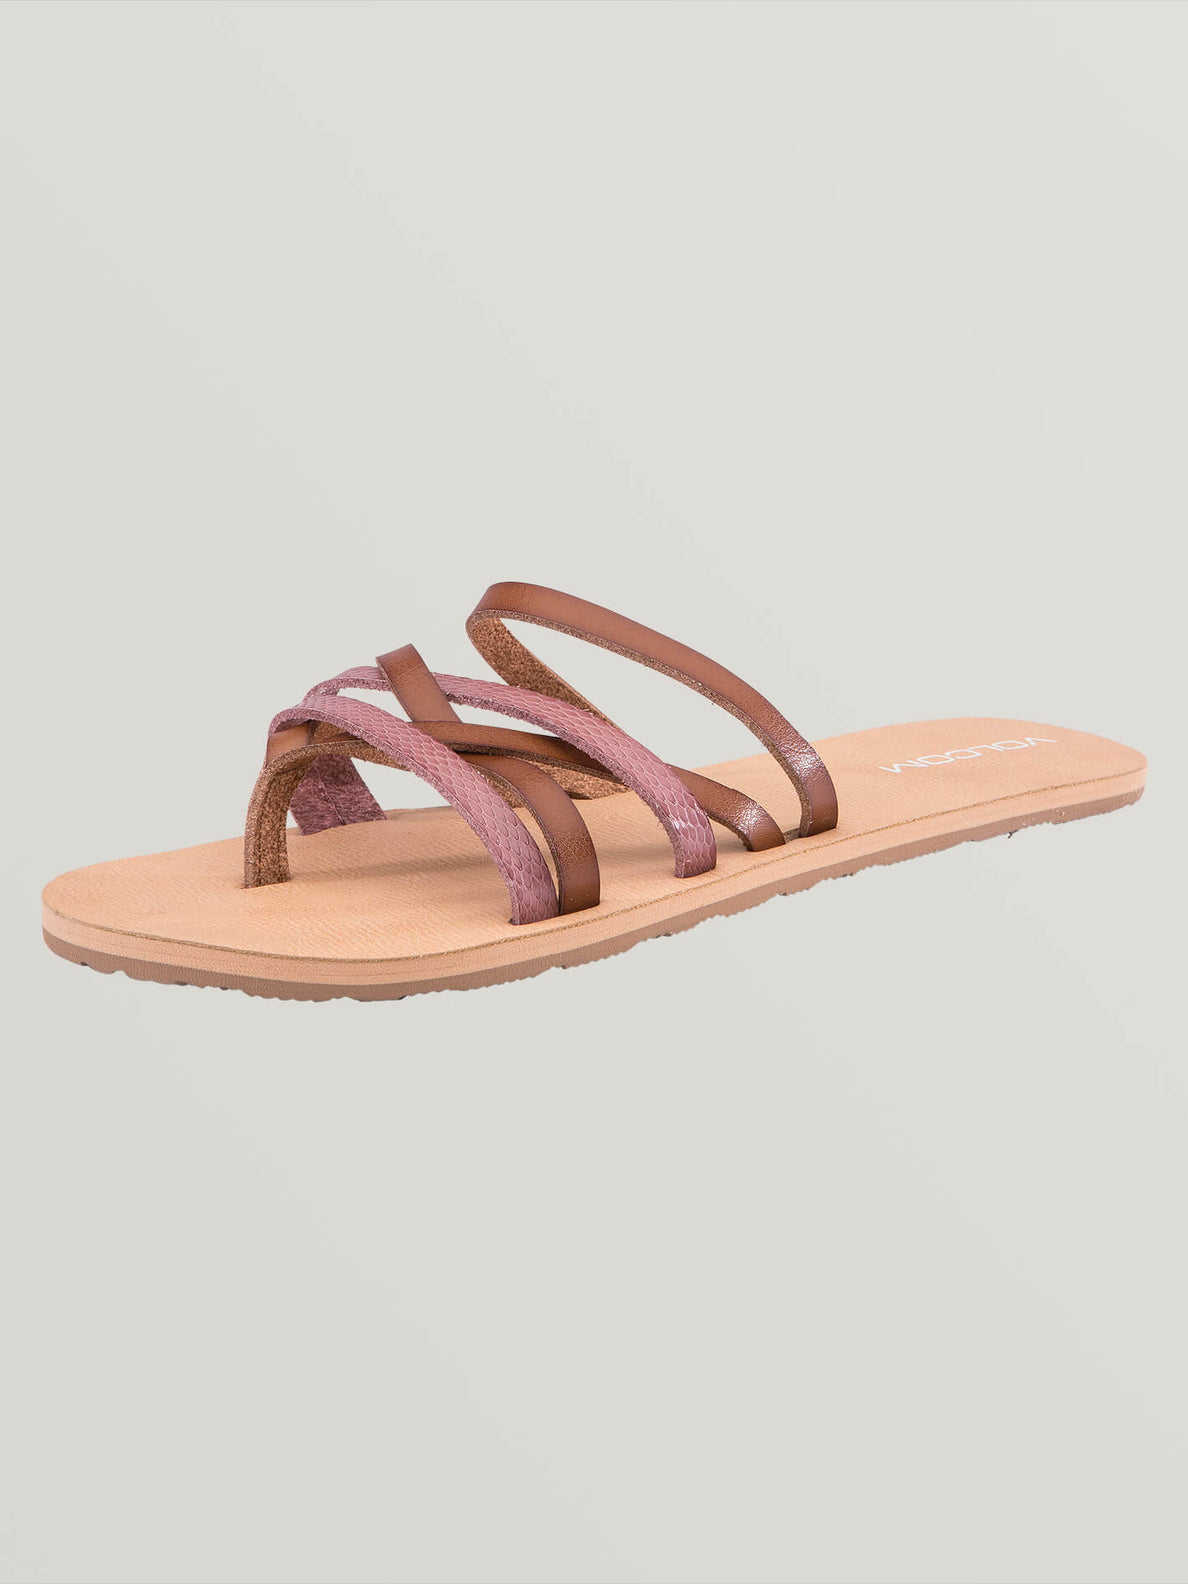 Legacy Sandals In Light Purple, Back View